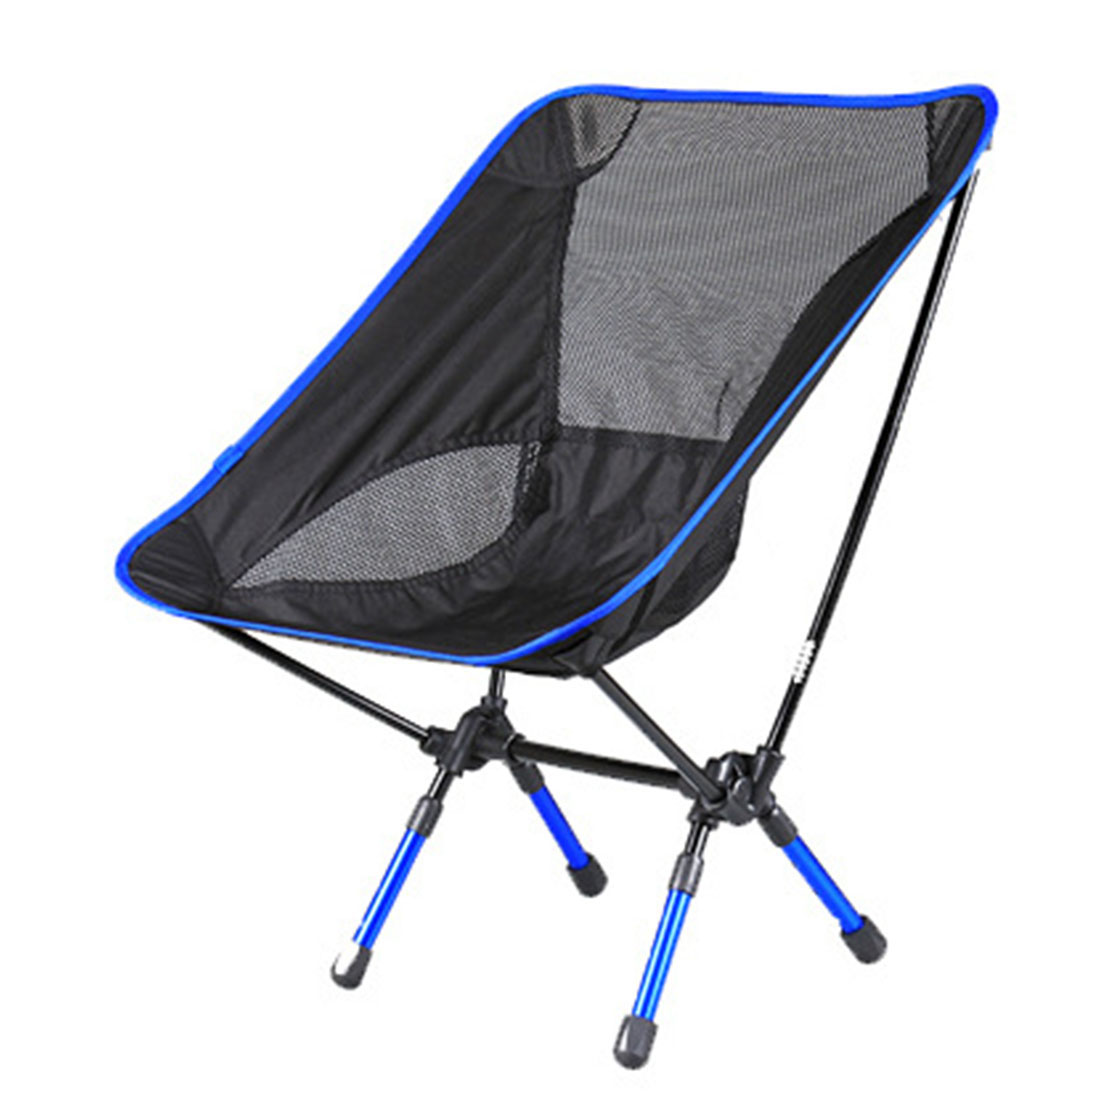 super light breathable backrest folding chair for fishing portable outdoor beach sunbath picnic barbecue party chair